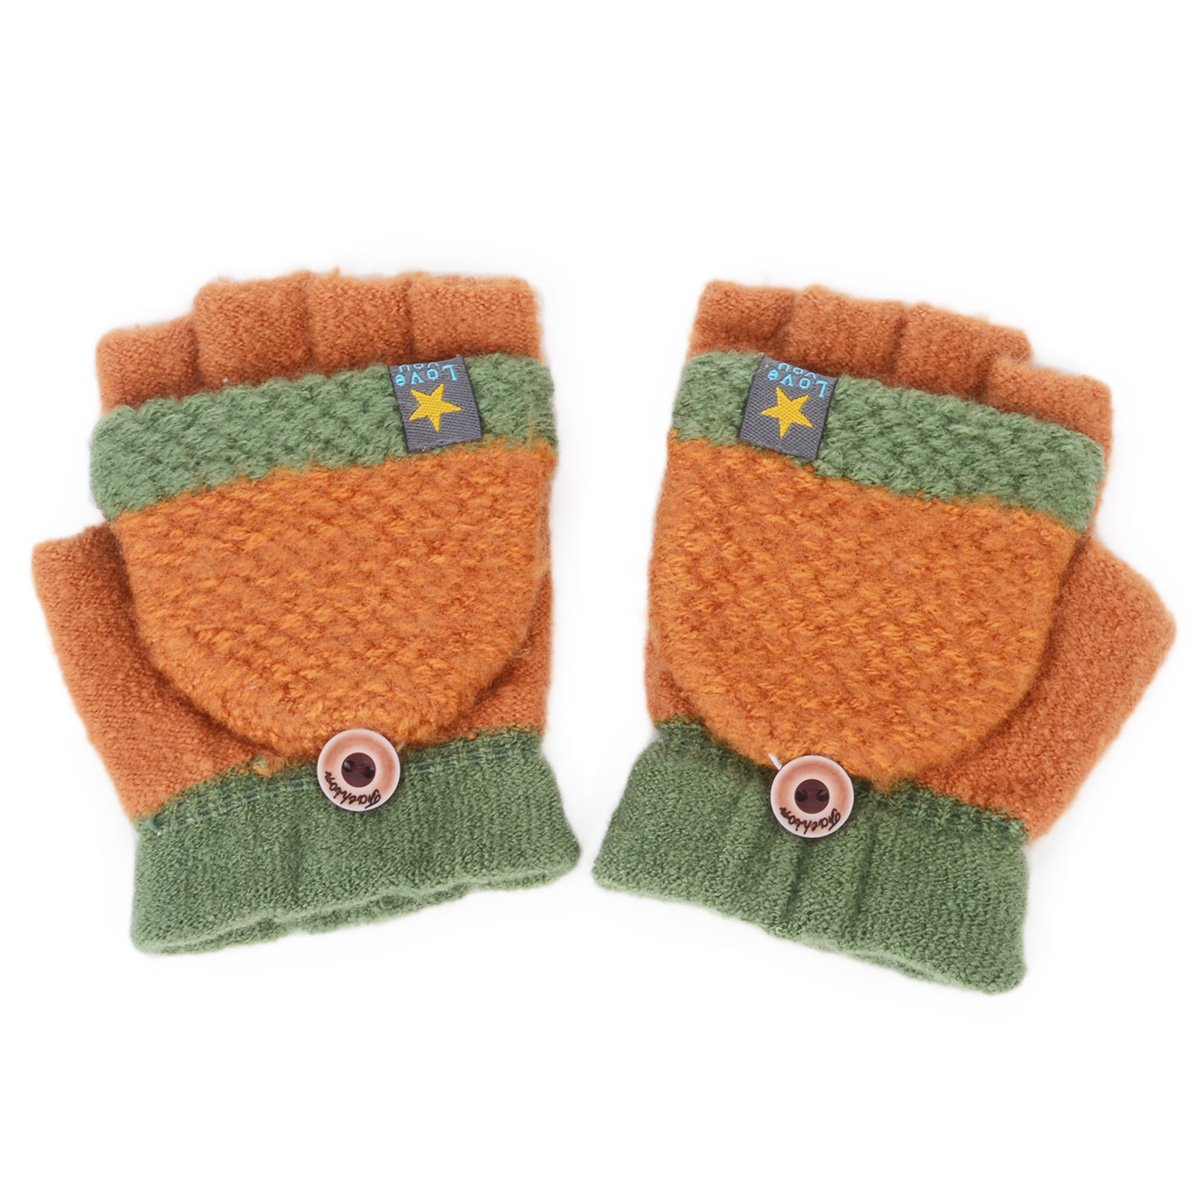 Flammi Unisex Kids Knitted Convertible Flip Top Gloves Mittens F Flammi M-B1999